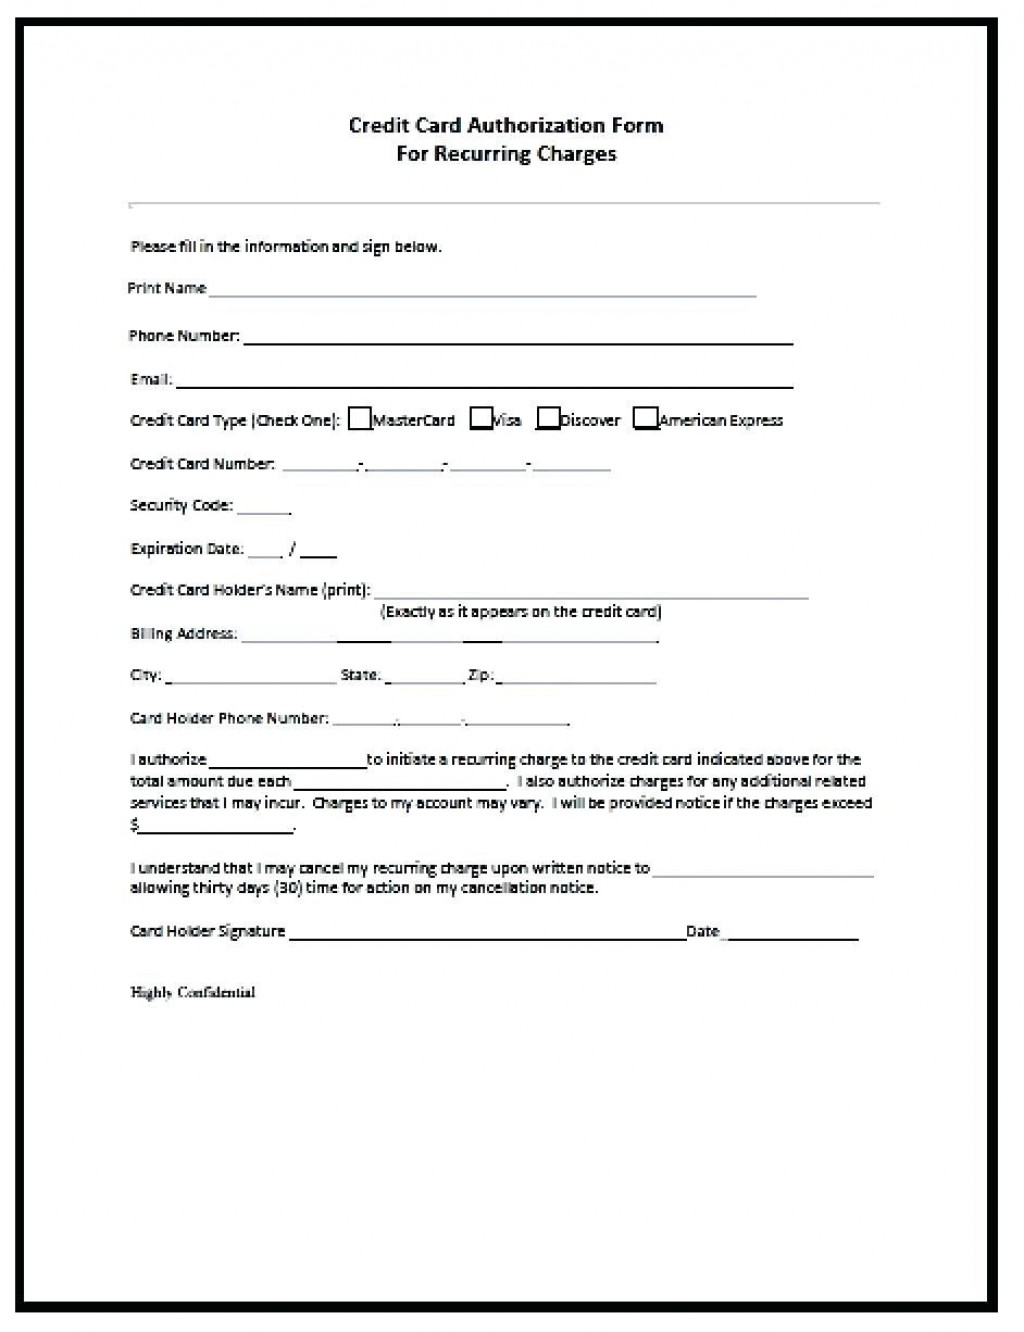 001 Remarkable Credit Card Usage Request Form Template High Def Large